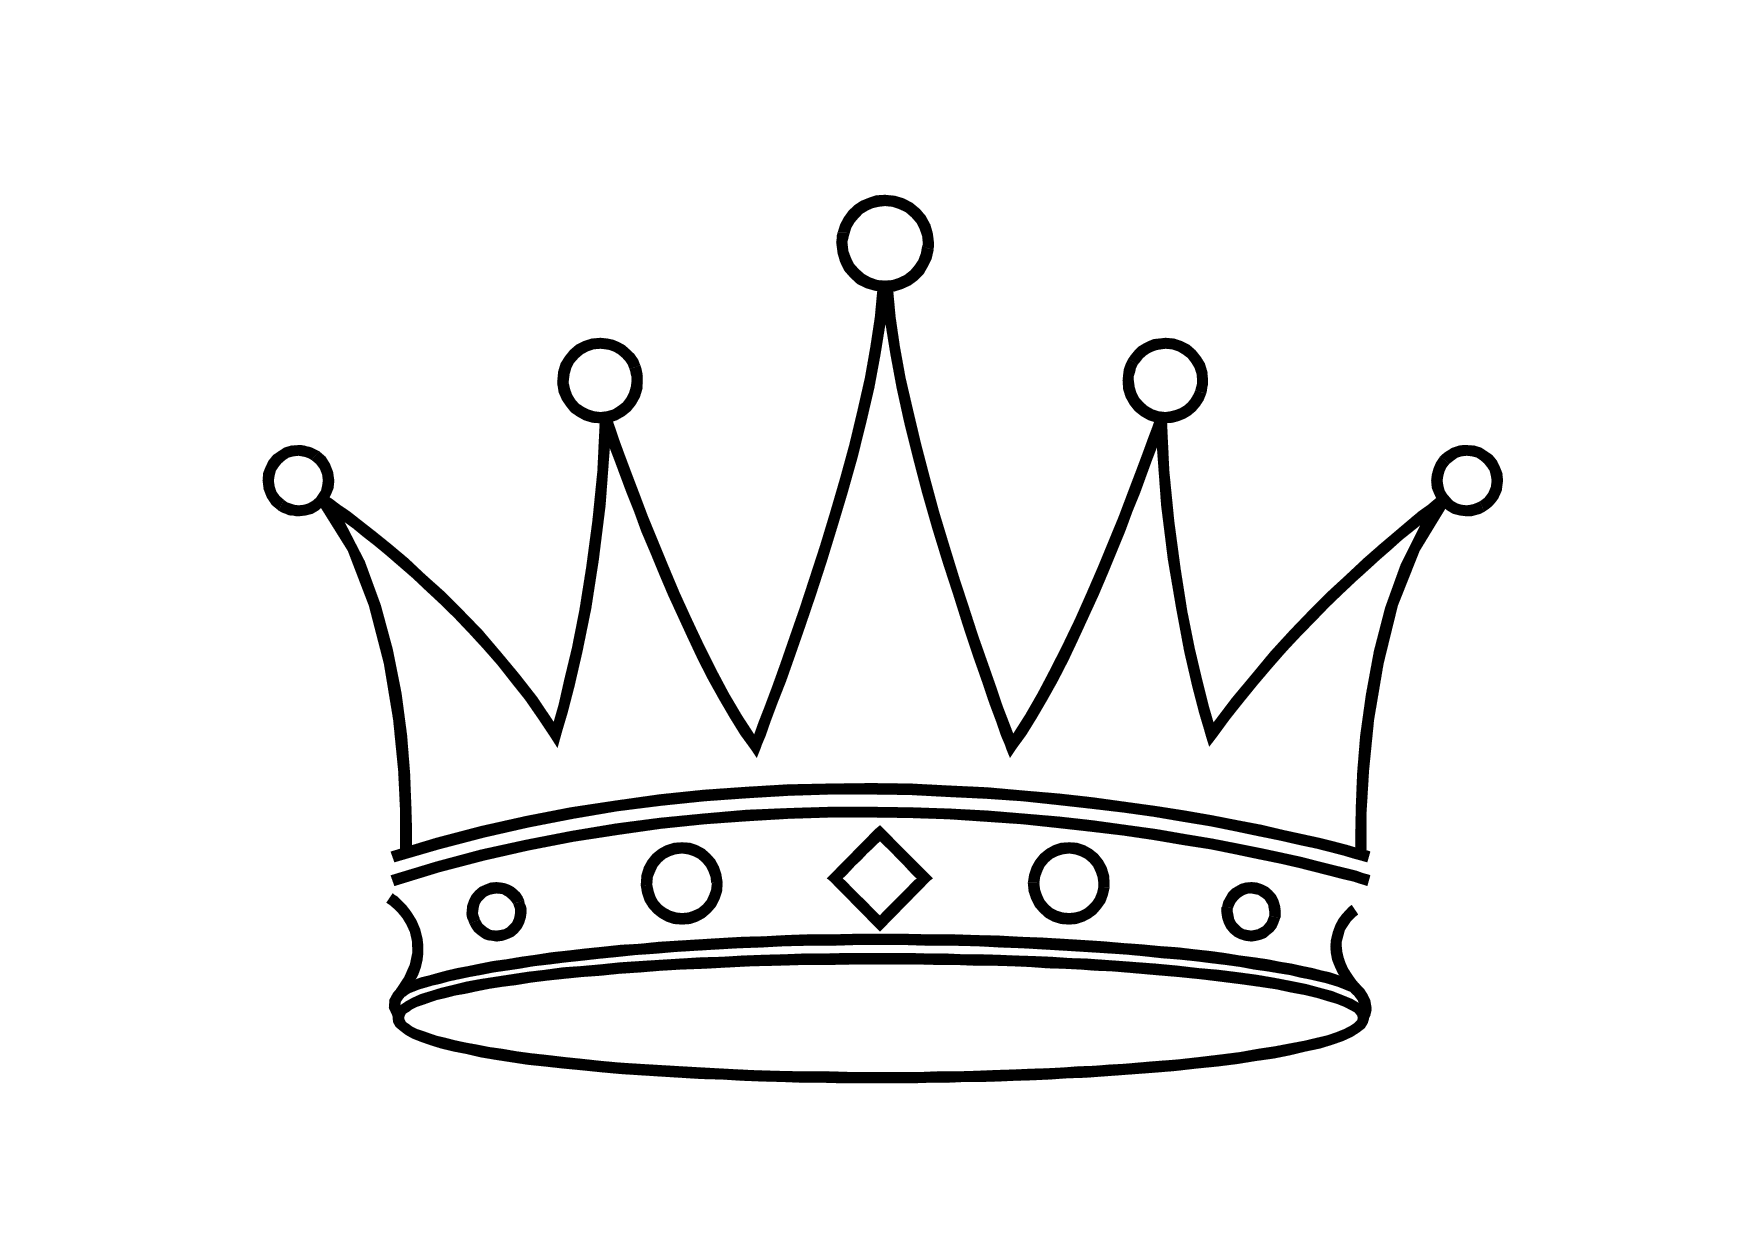 King crown clipart kid 2